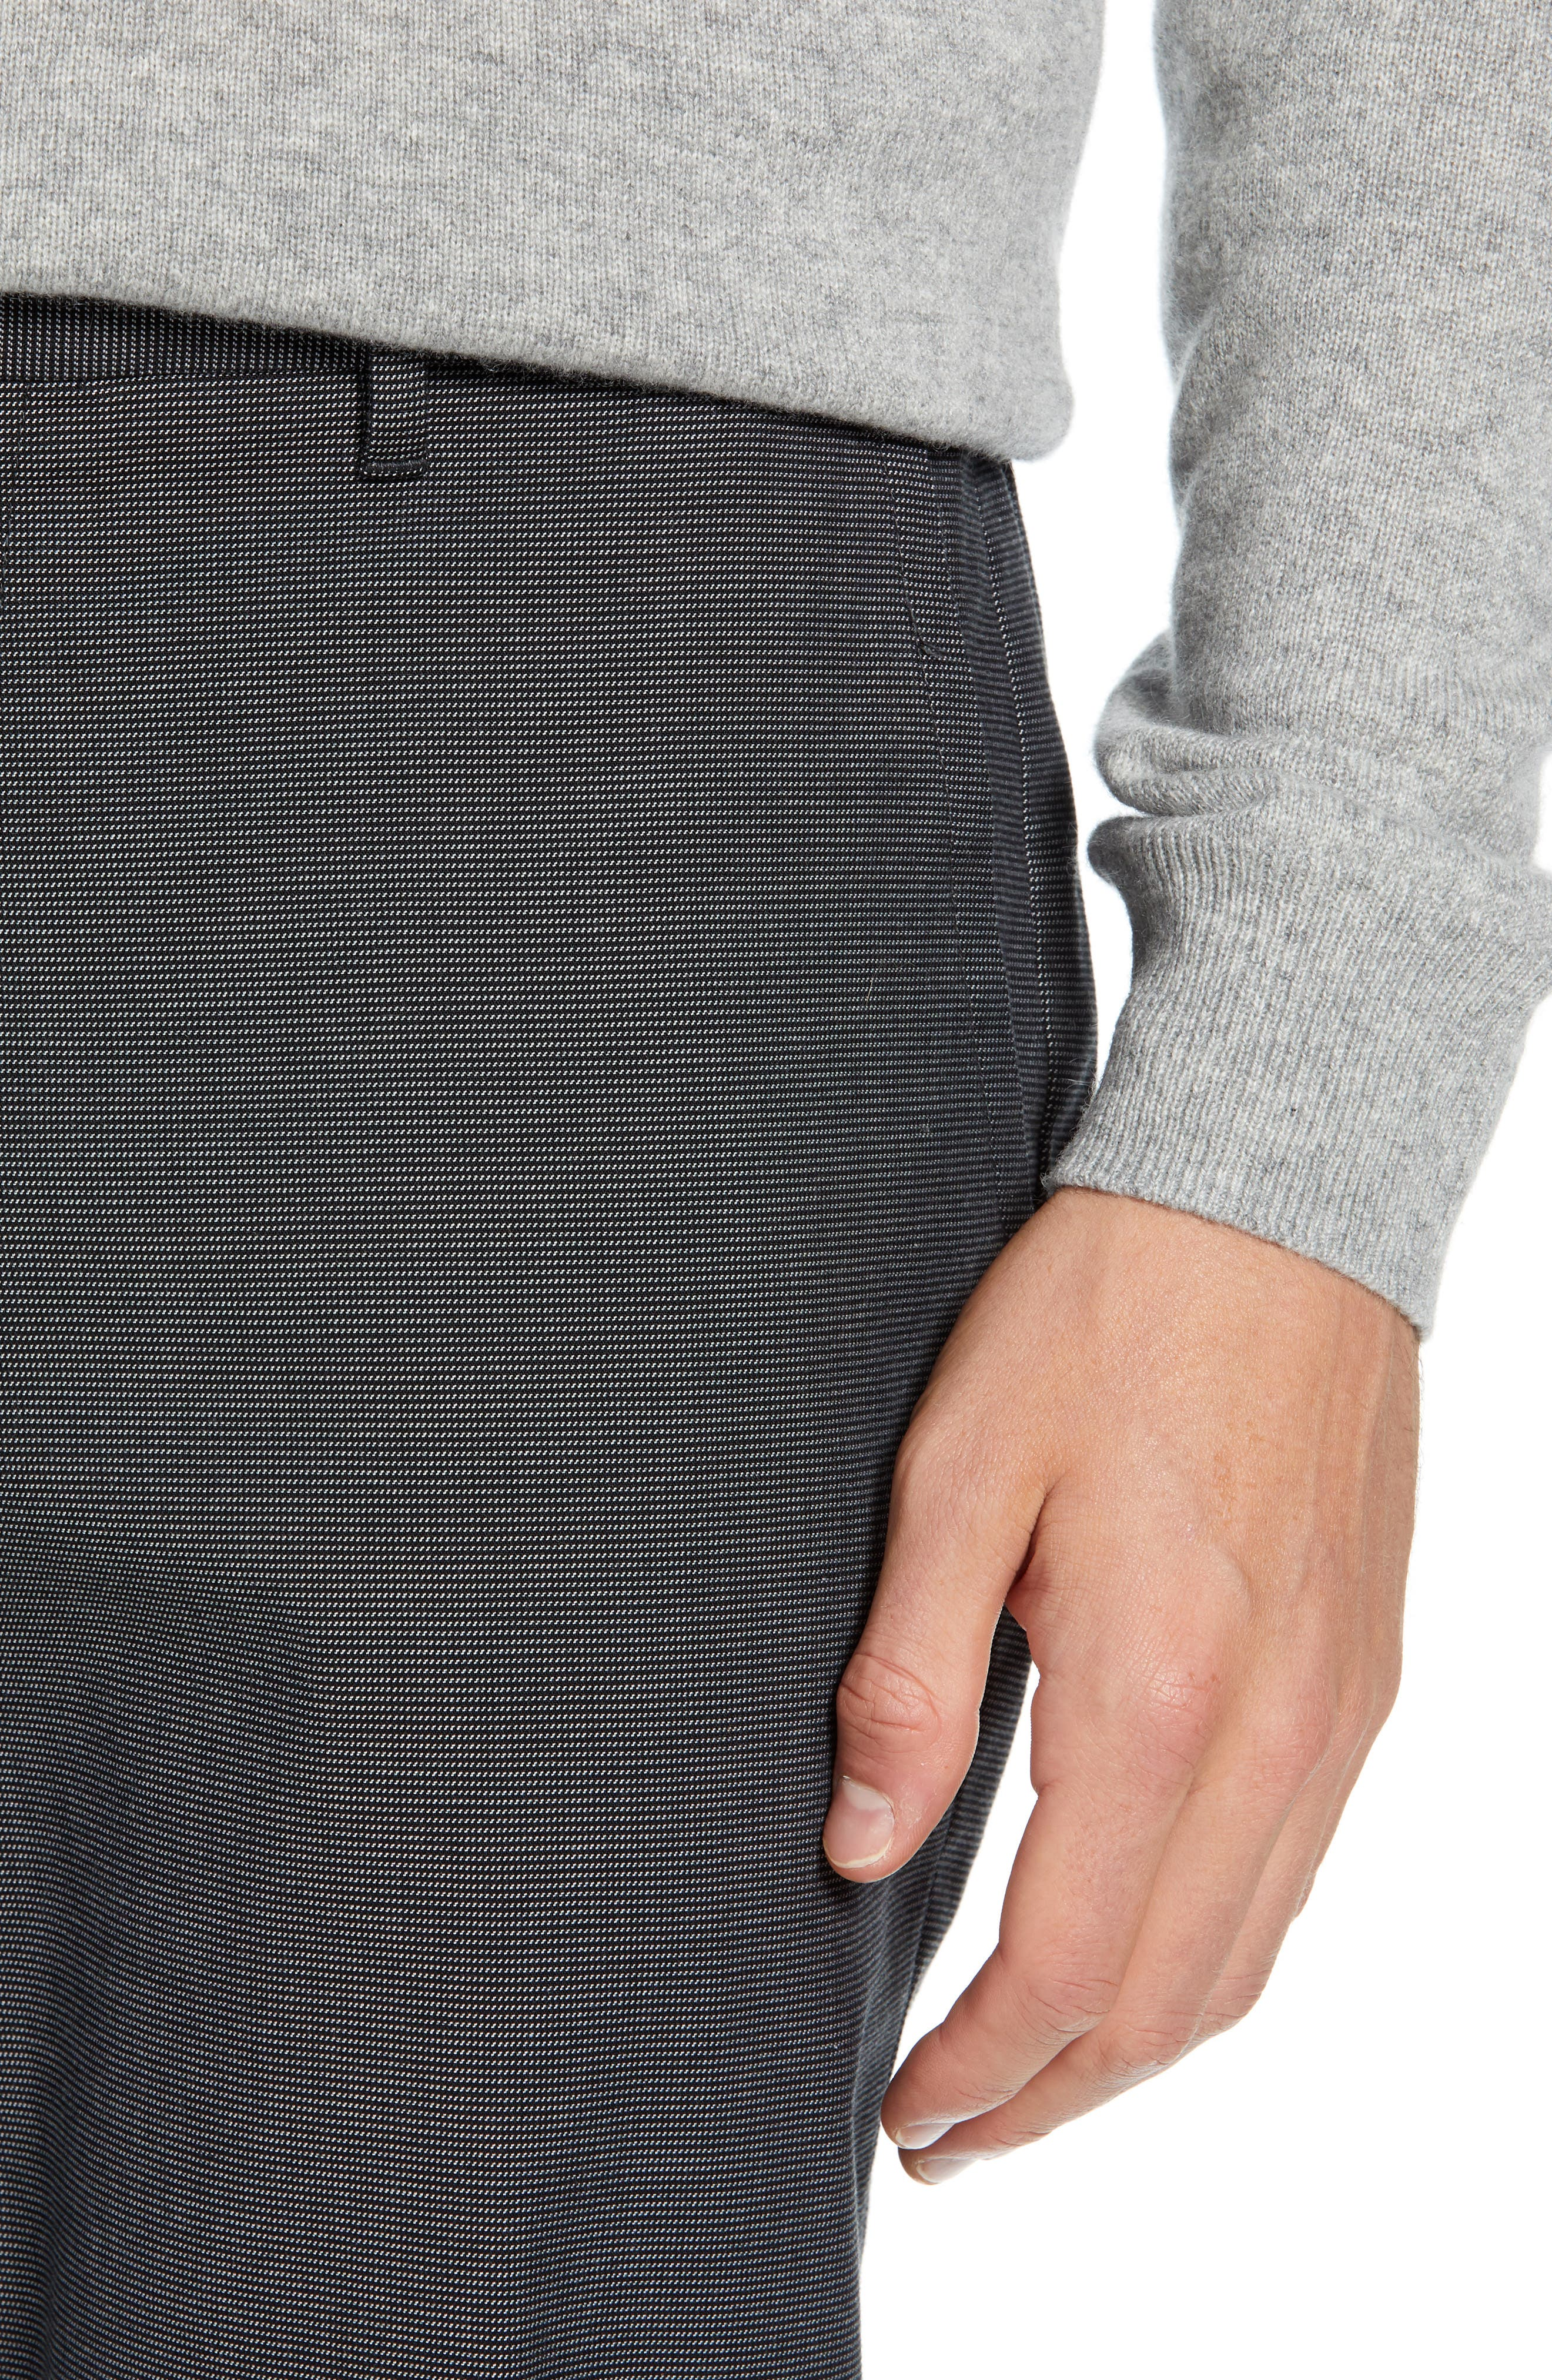 Weekday Warrior Straight Leg Stretch Dress Pants,                             Alternate thumbnail 4, color,                             TUESDAY CHARCOAL